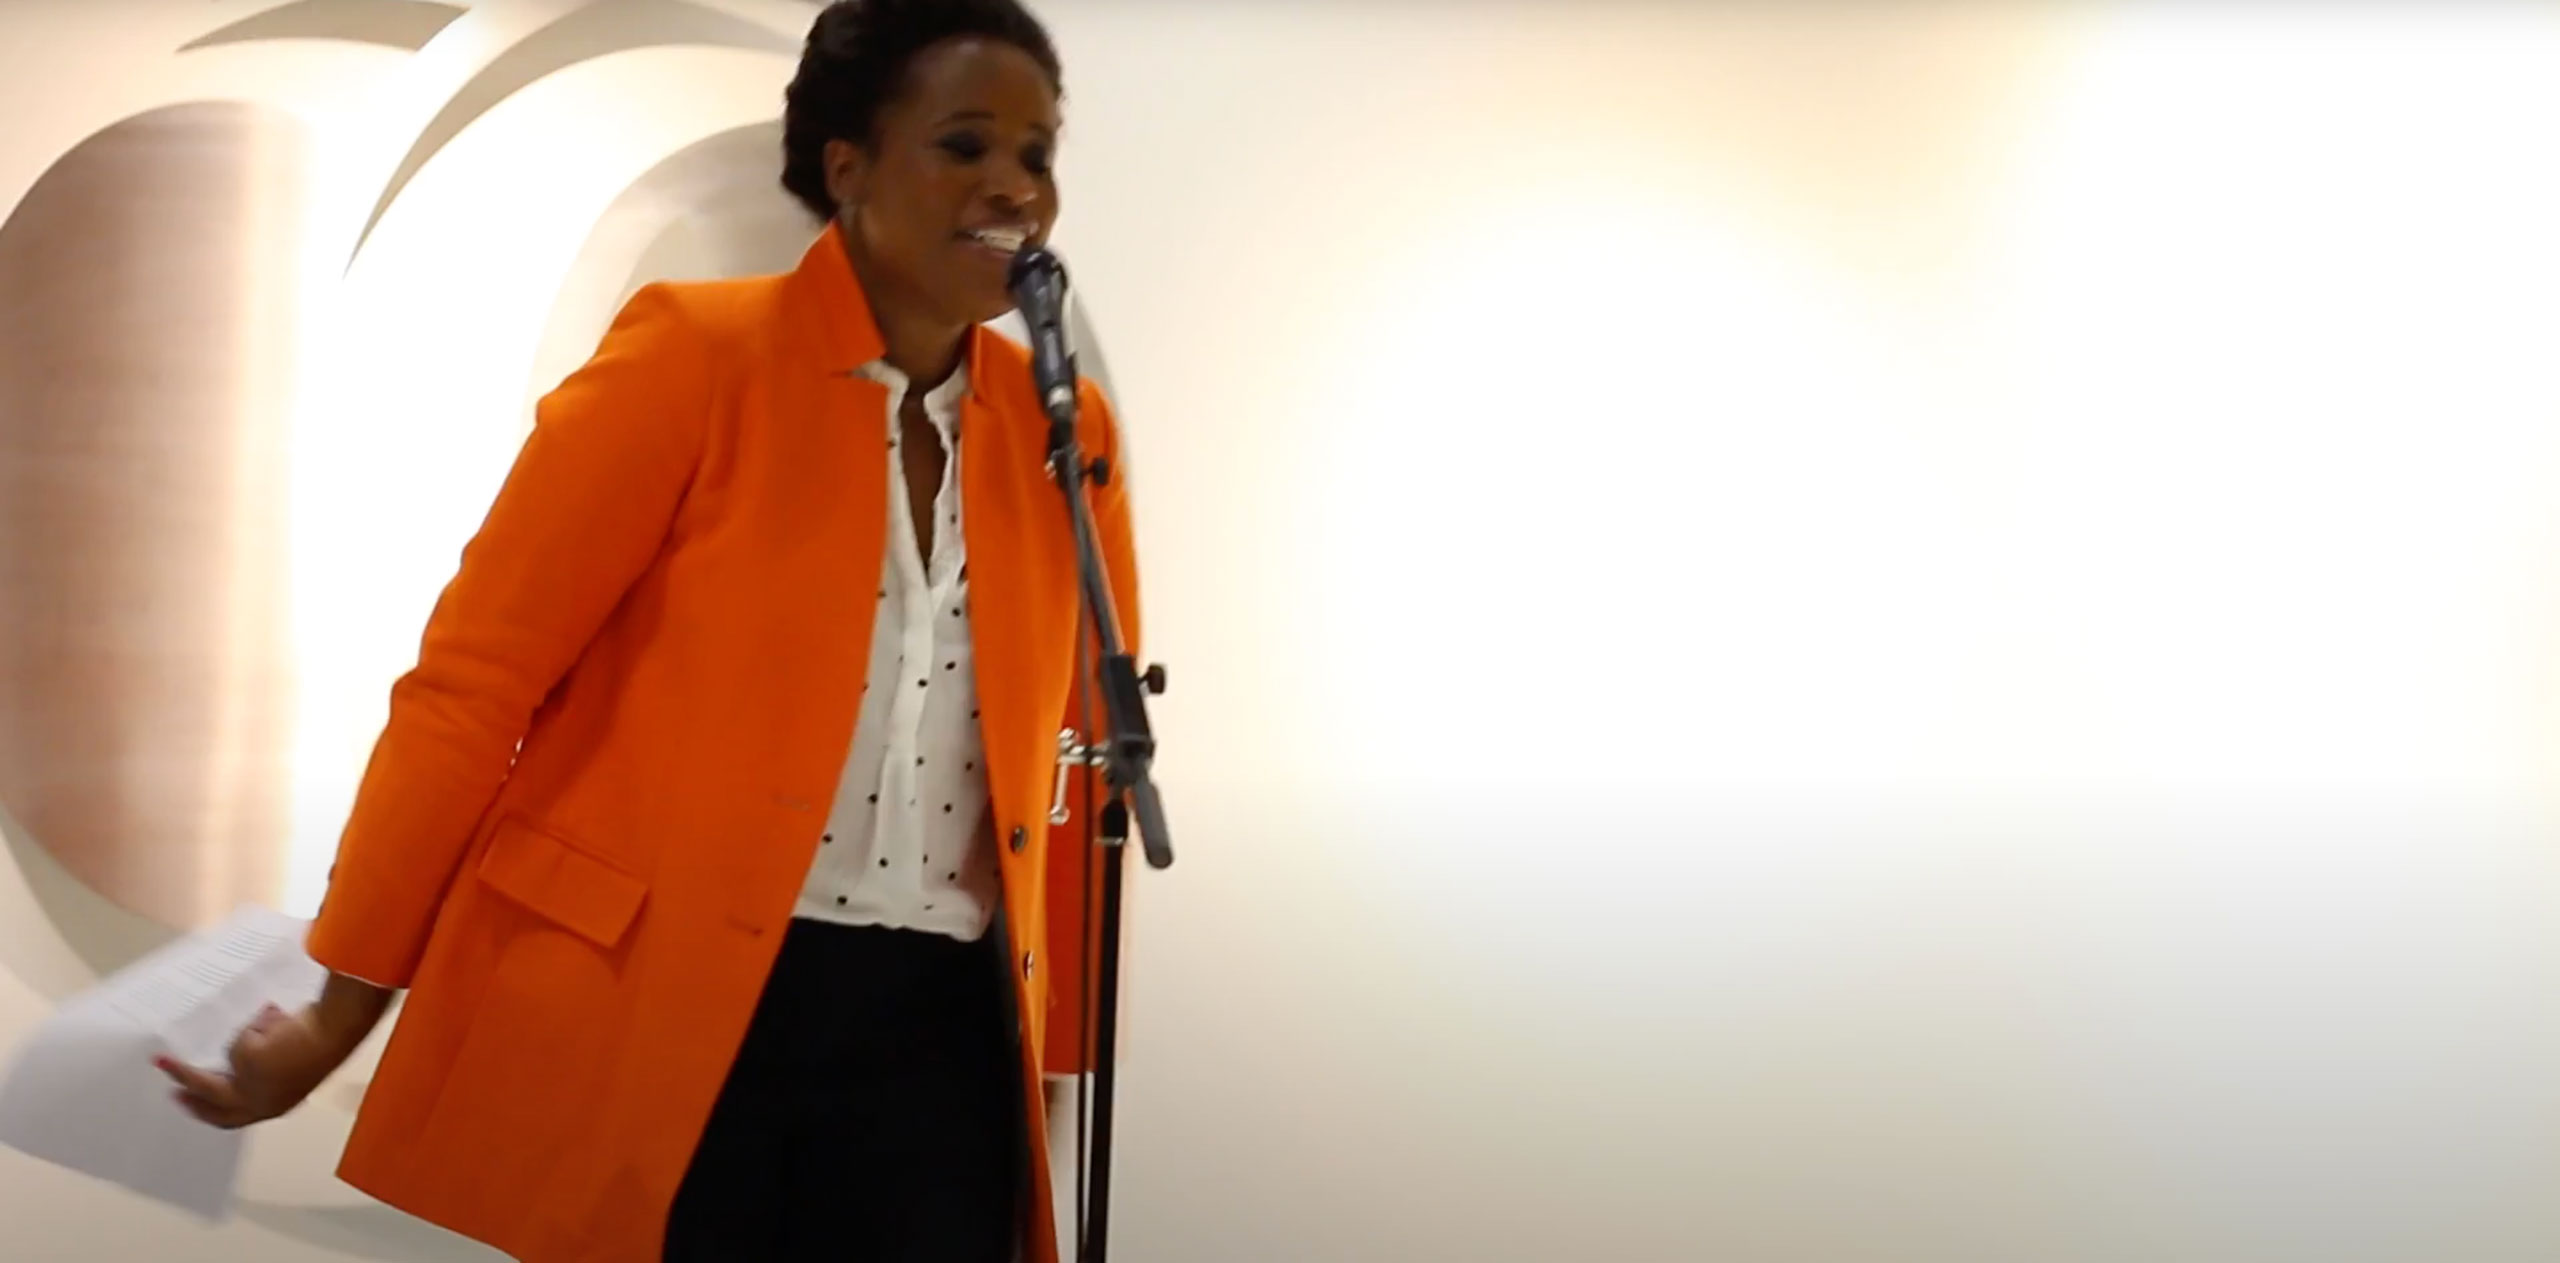 Charlene White, ITV News Presenter, was our host at our annual reception in 2018. Here is the speech she gave to our assembled guests.